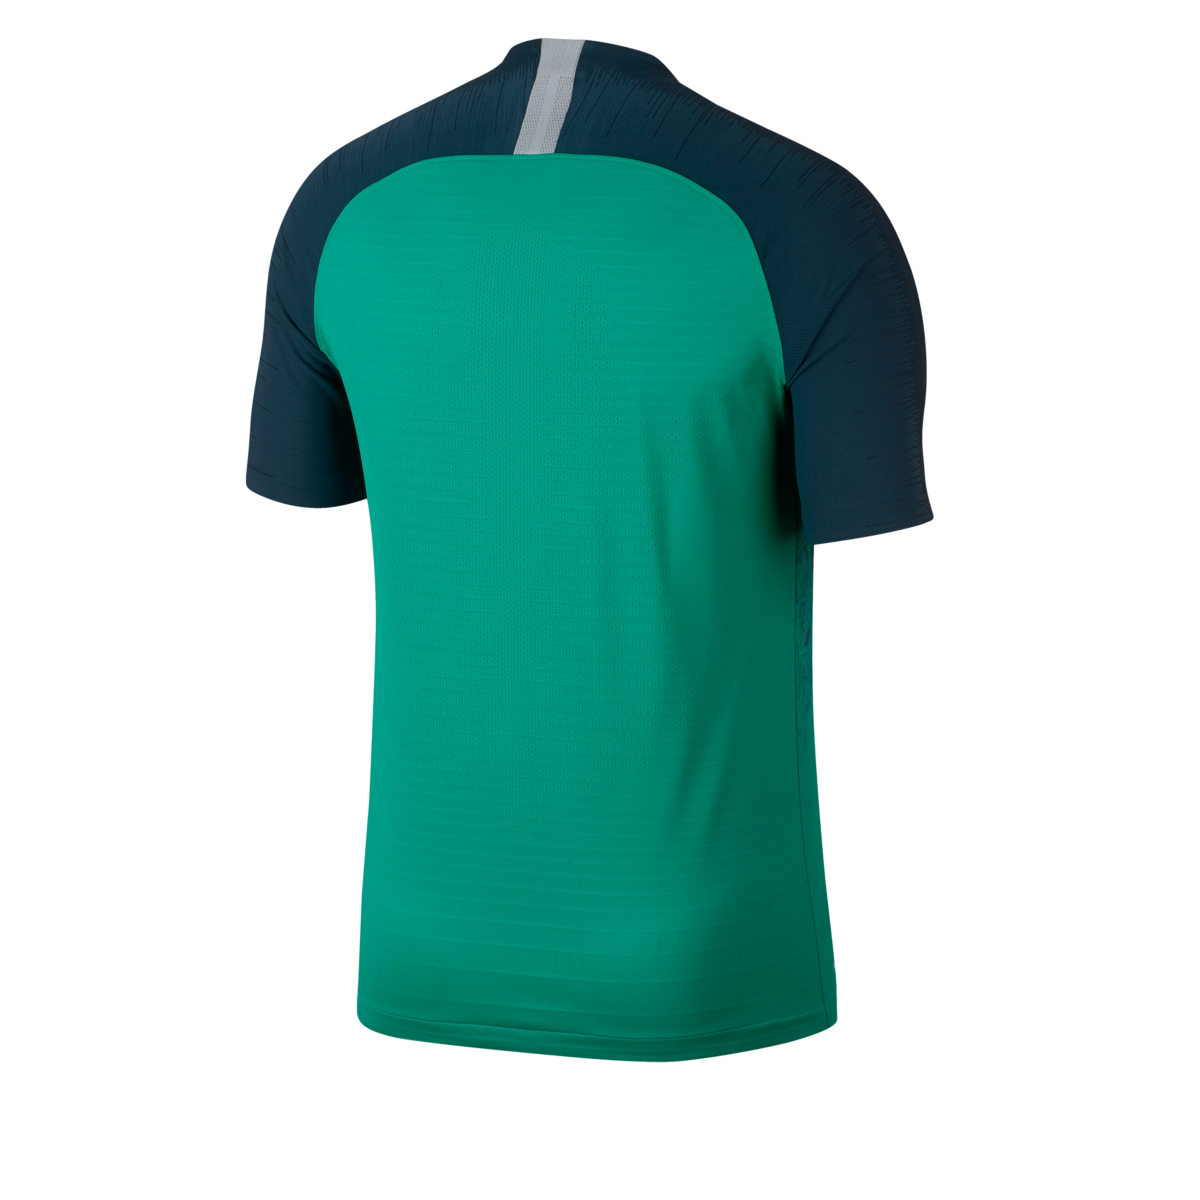 Tottenham Hotspur 2018 19 Nike Third Kit 18 19 Kits Football Shirt Blog